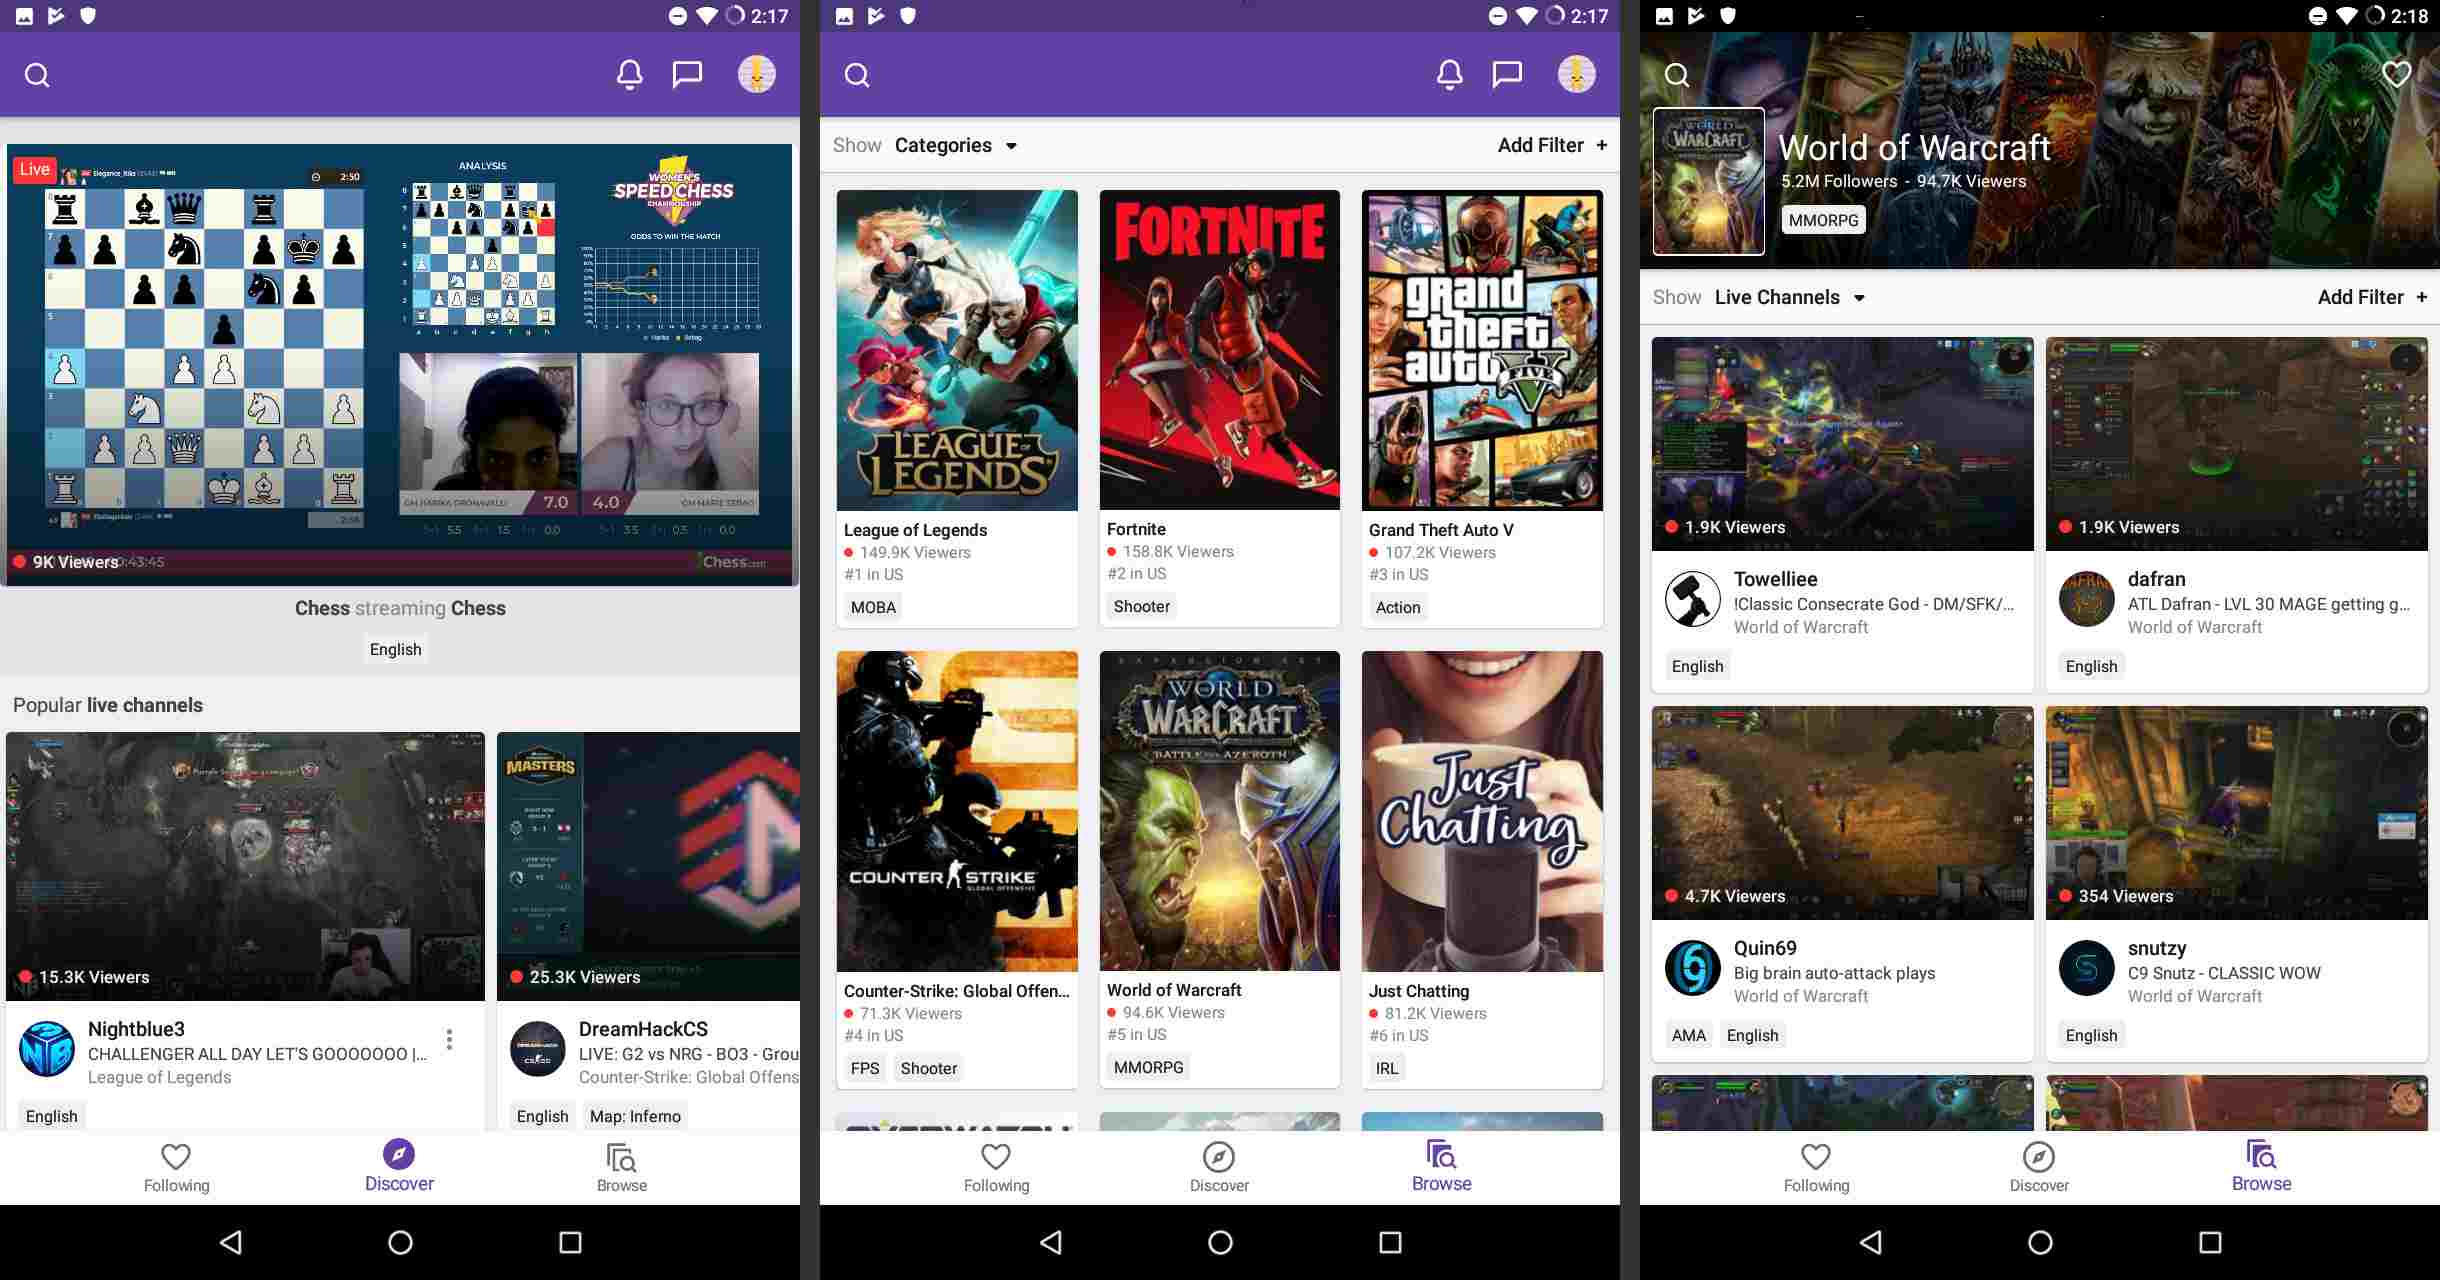 Twitch on Android